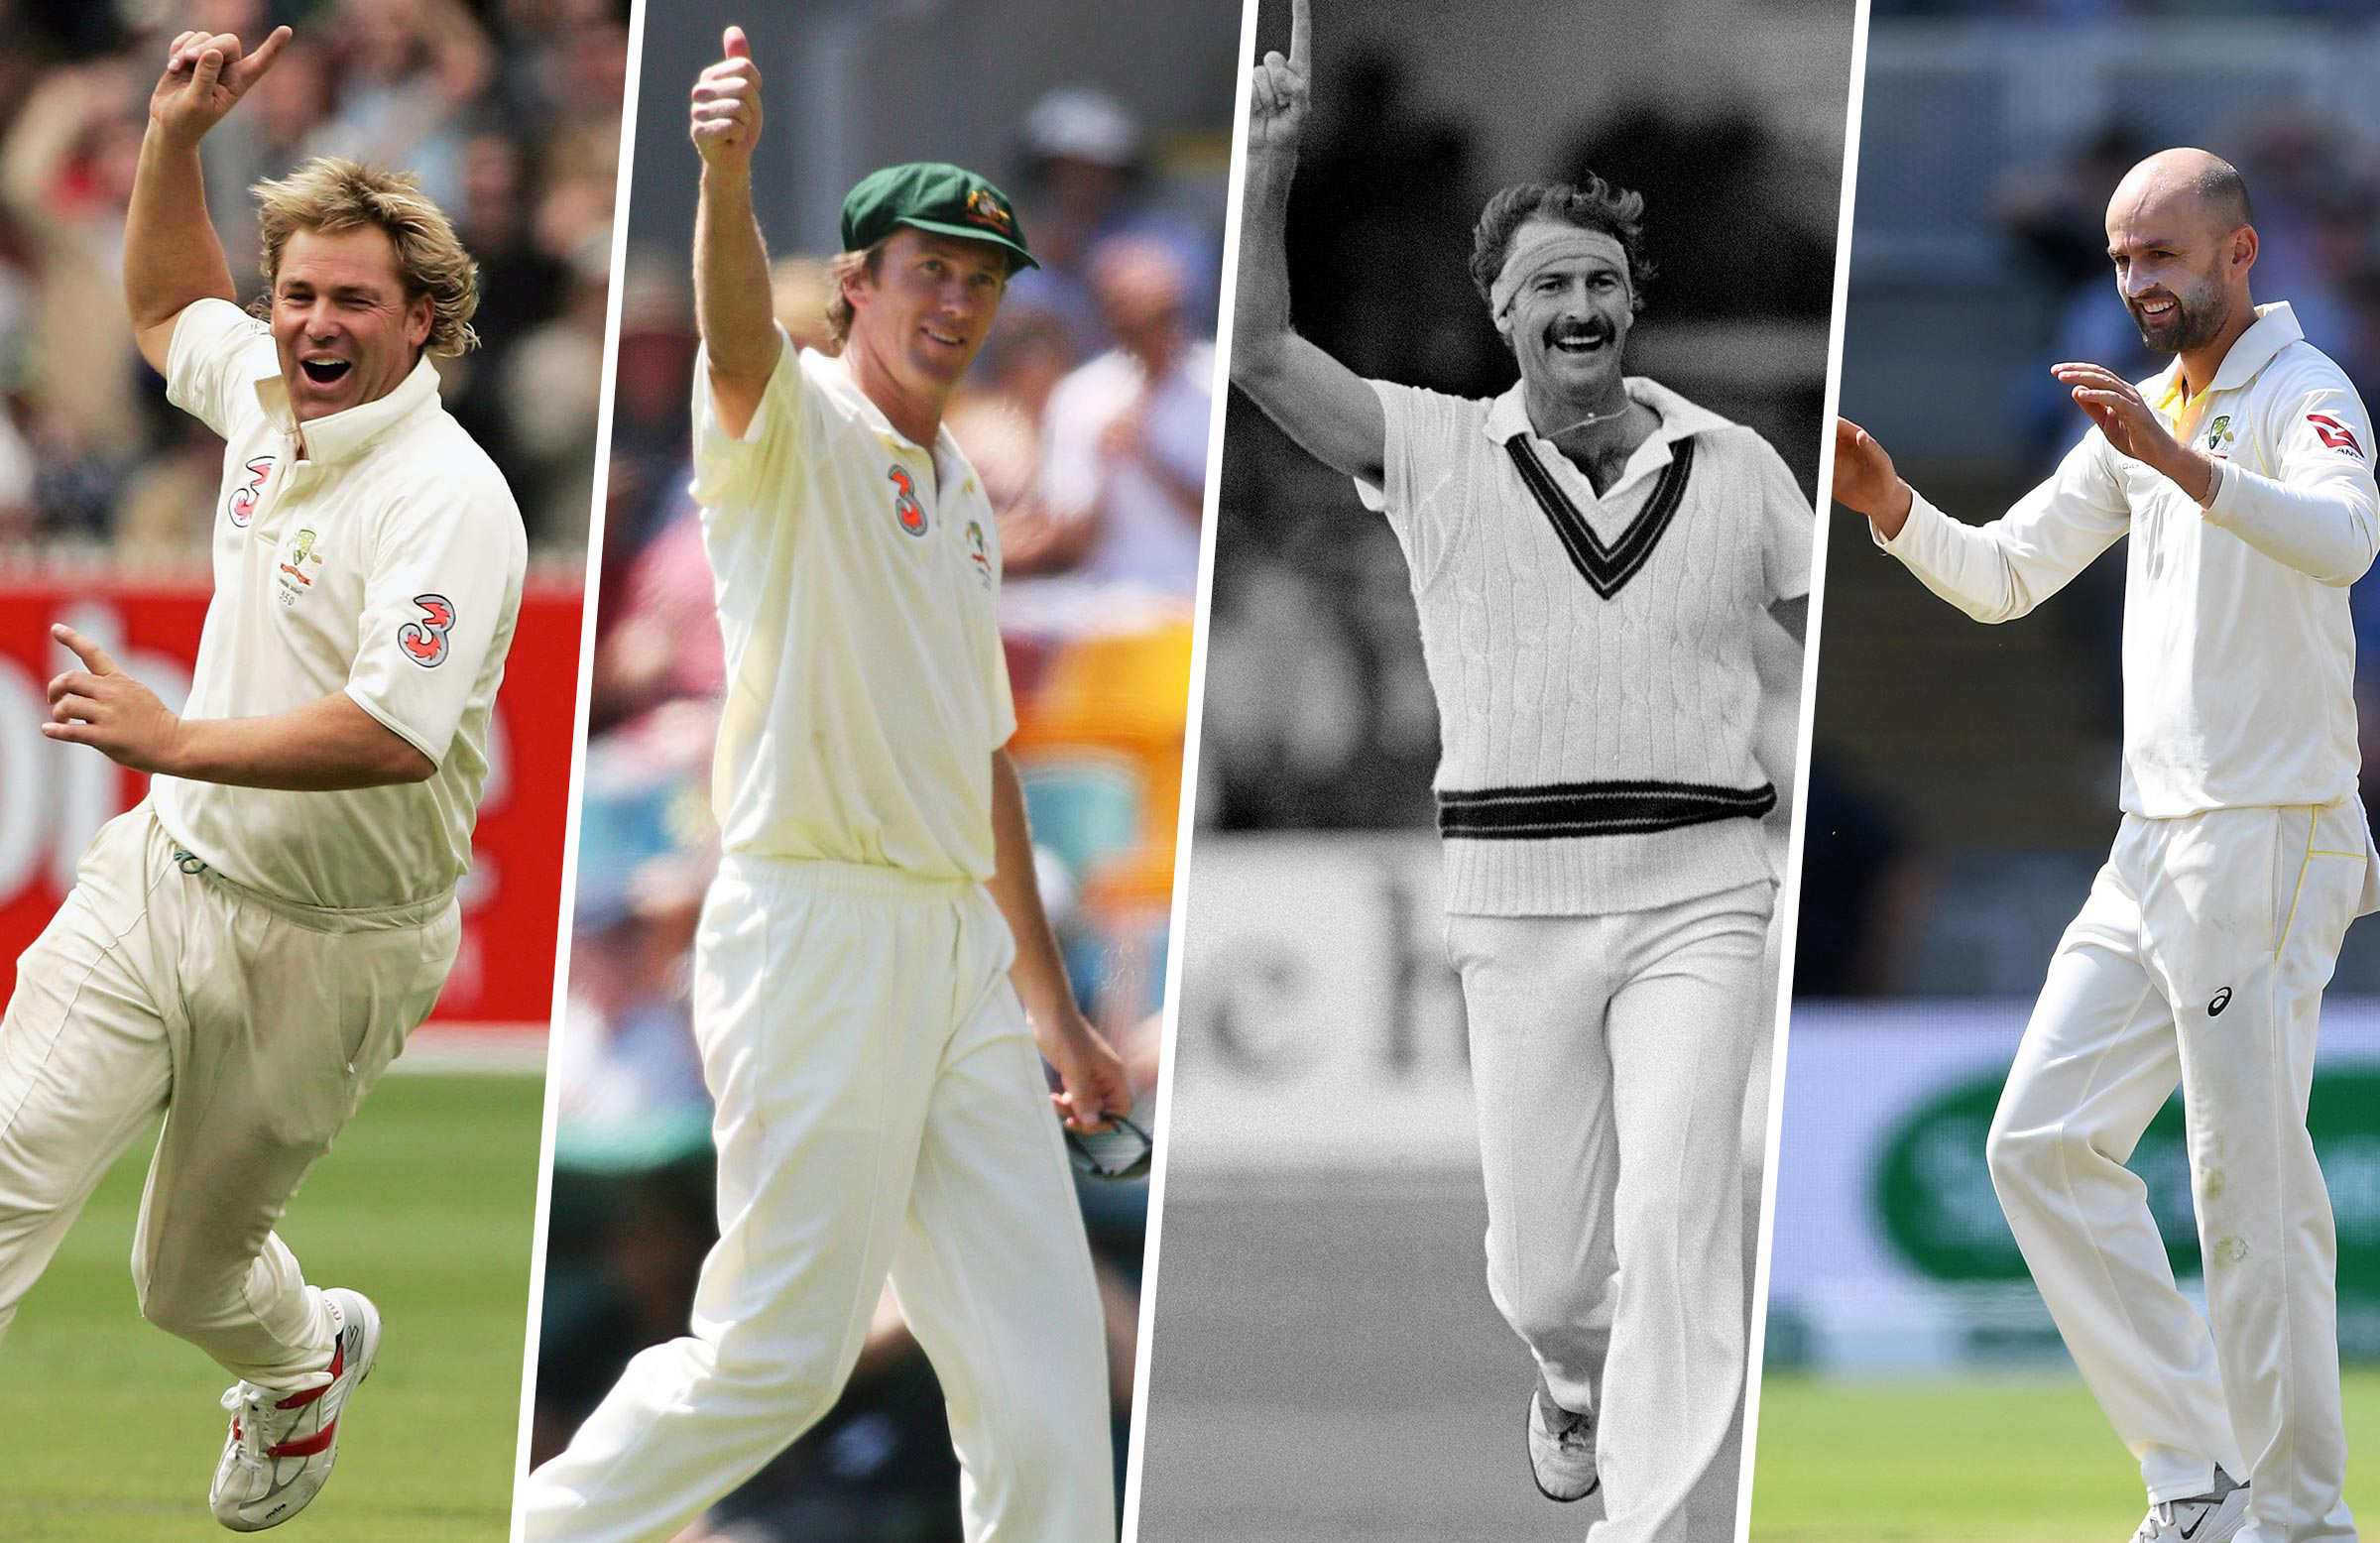 The 350 club (from left): Warne, McGrath, Lillee and Lyon // Getty